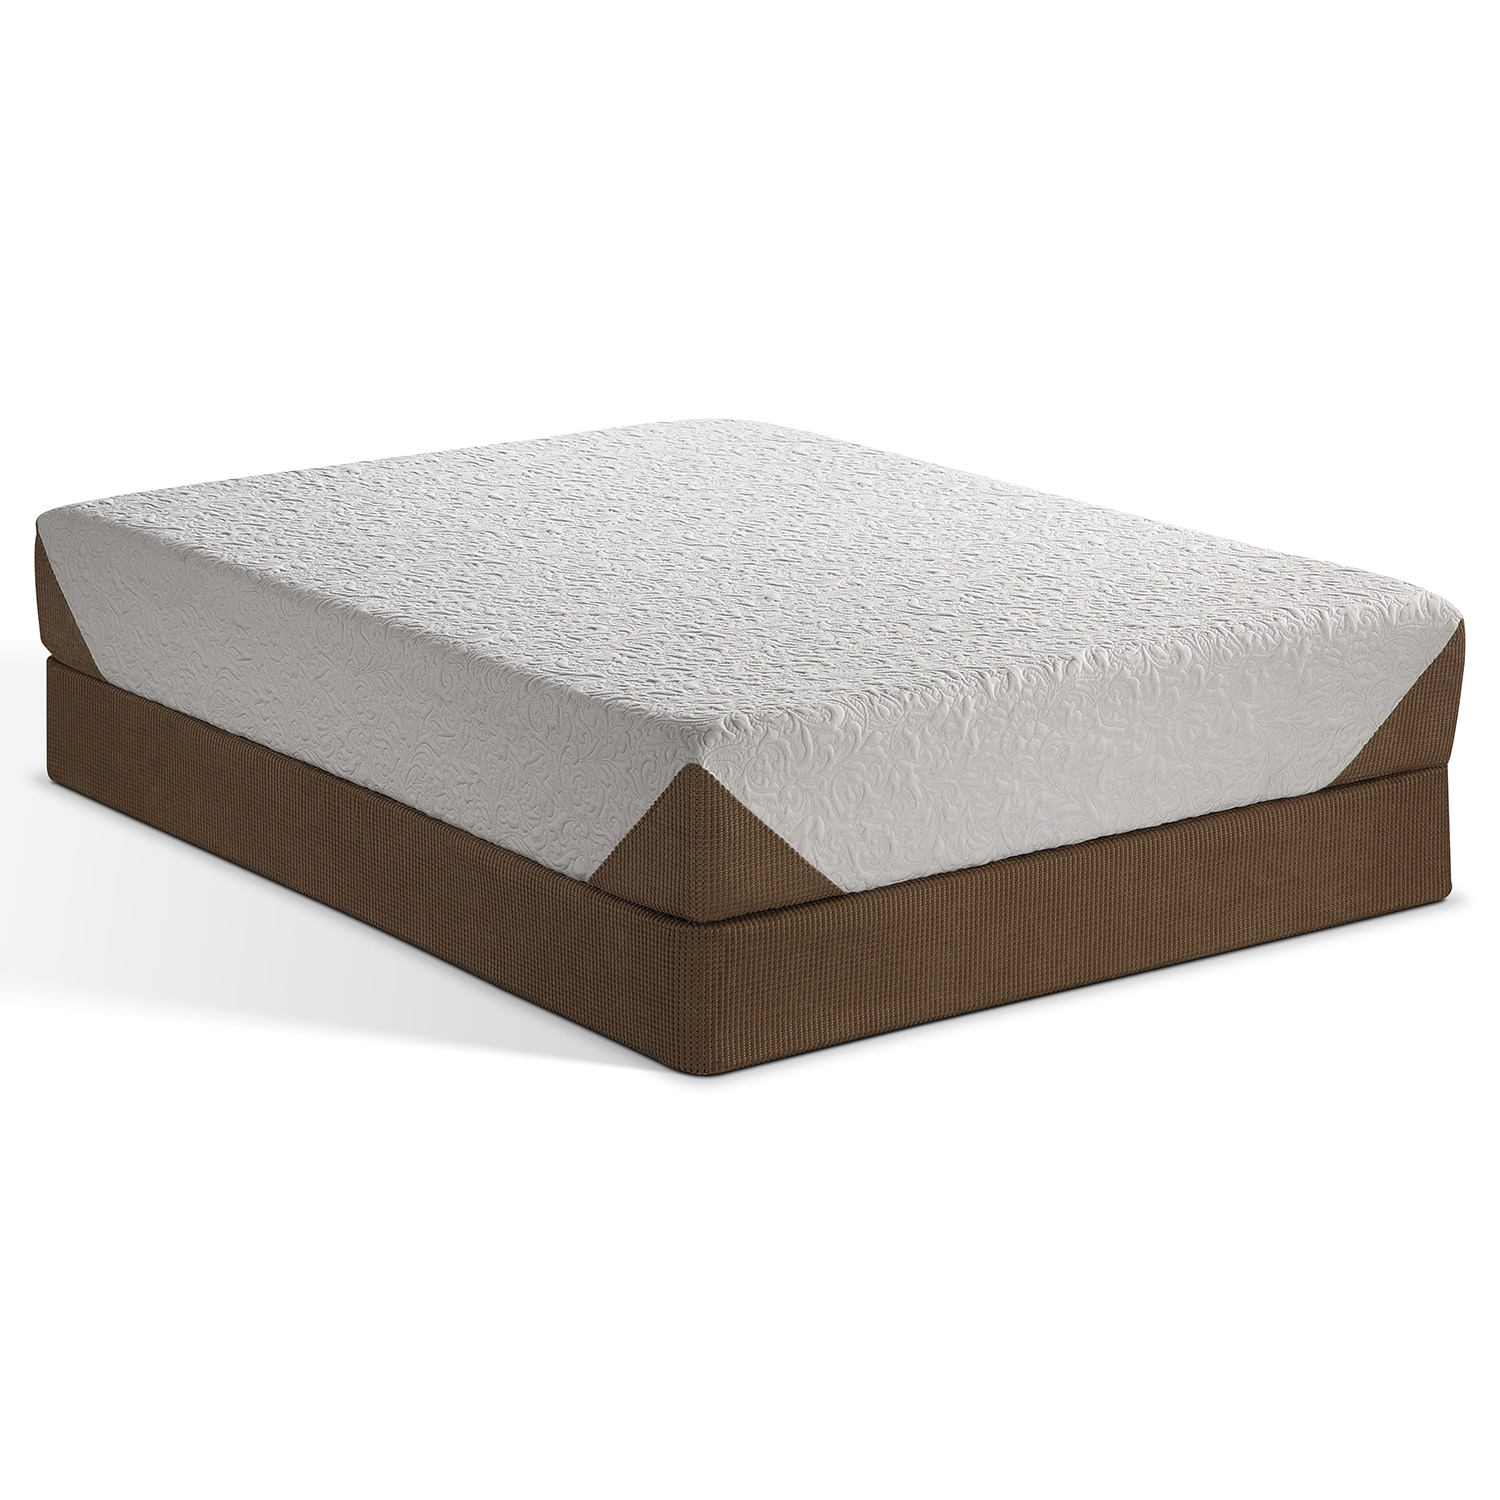 Value city furniture for Full bed sets with mattress